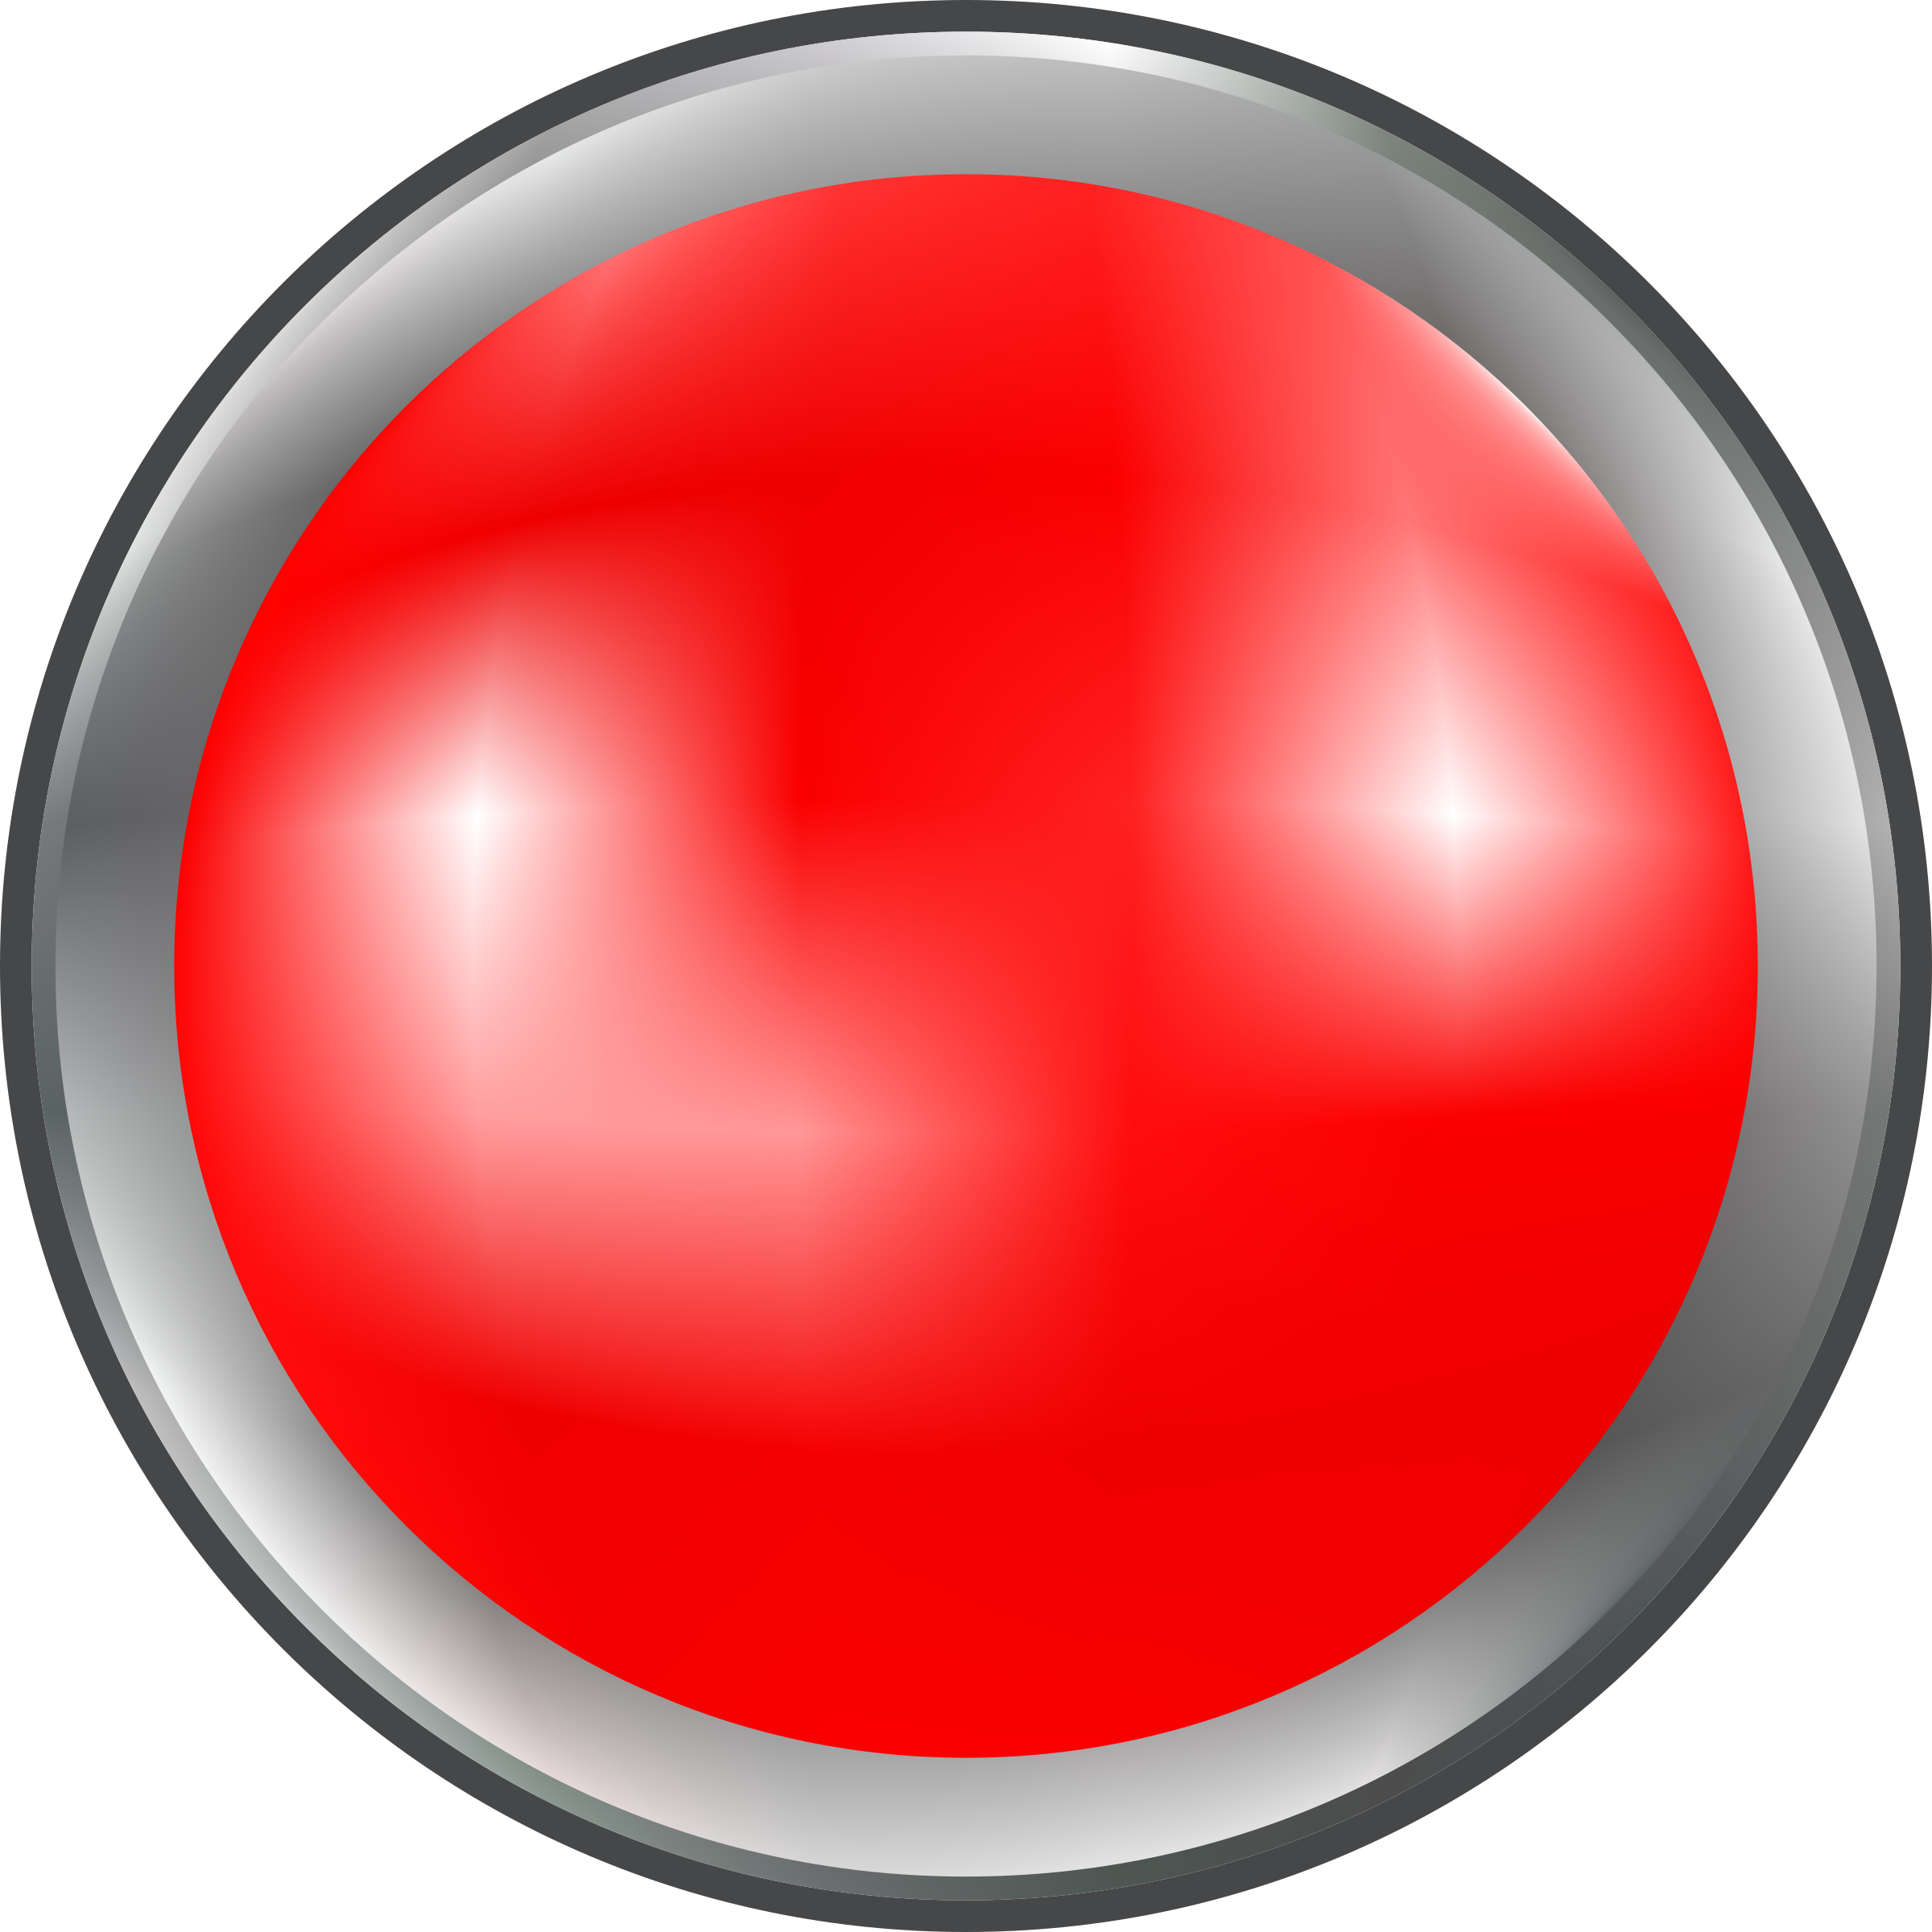 Free Red Light Cliparts, Download Free Clip Art, Free Clip.